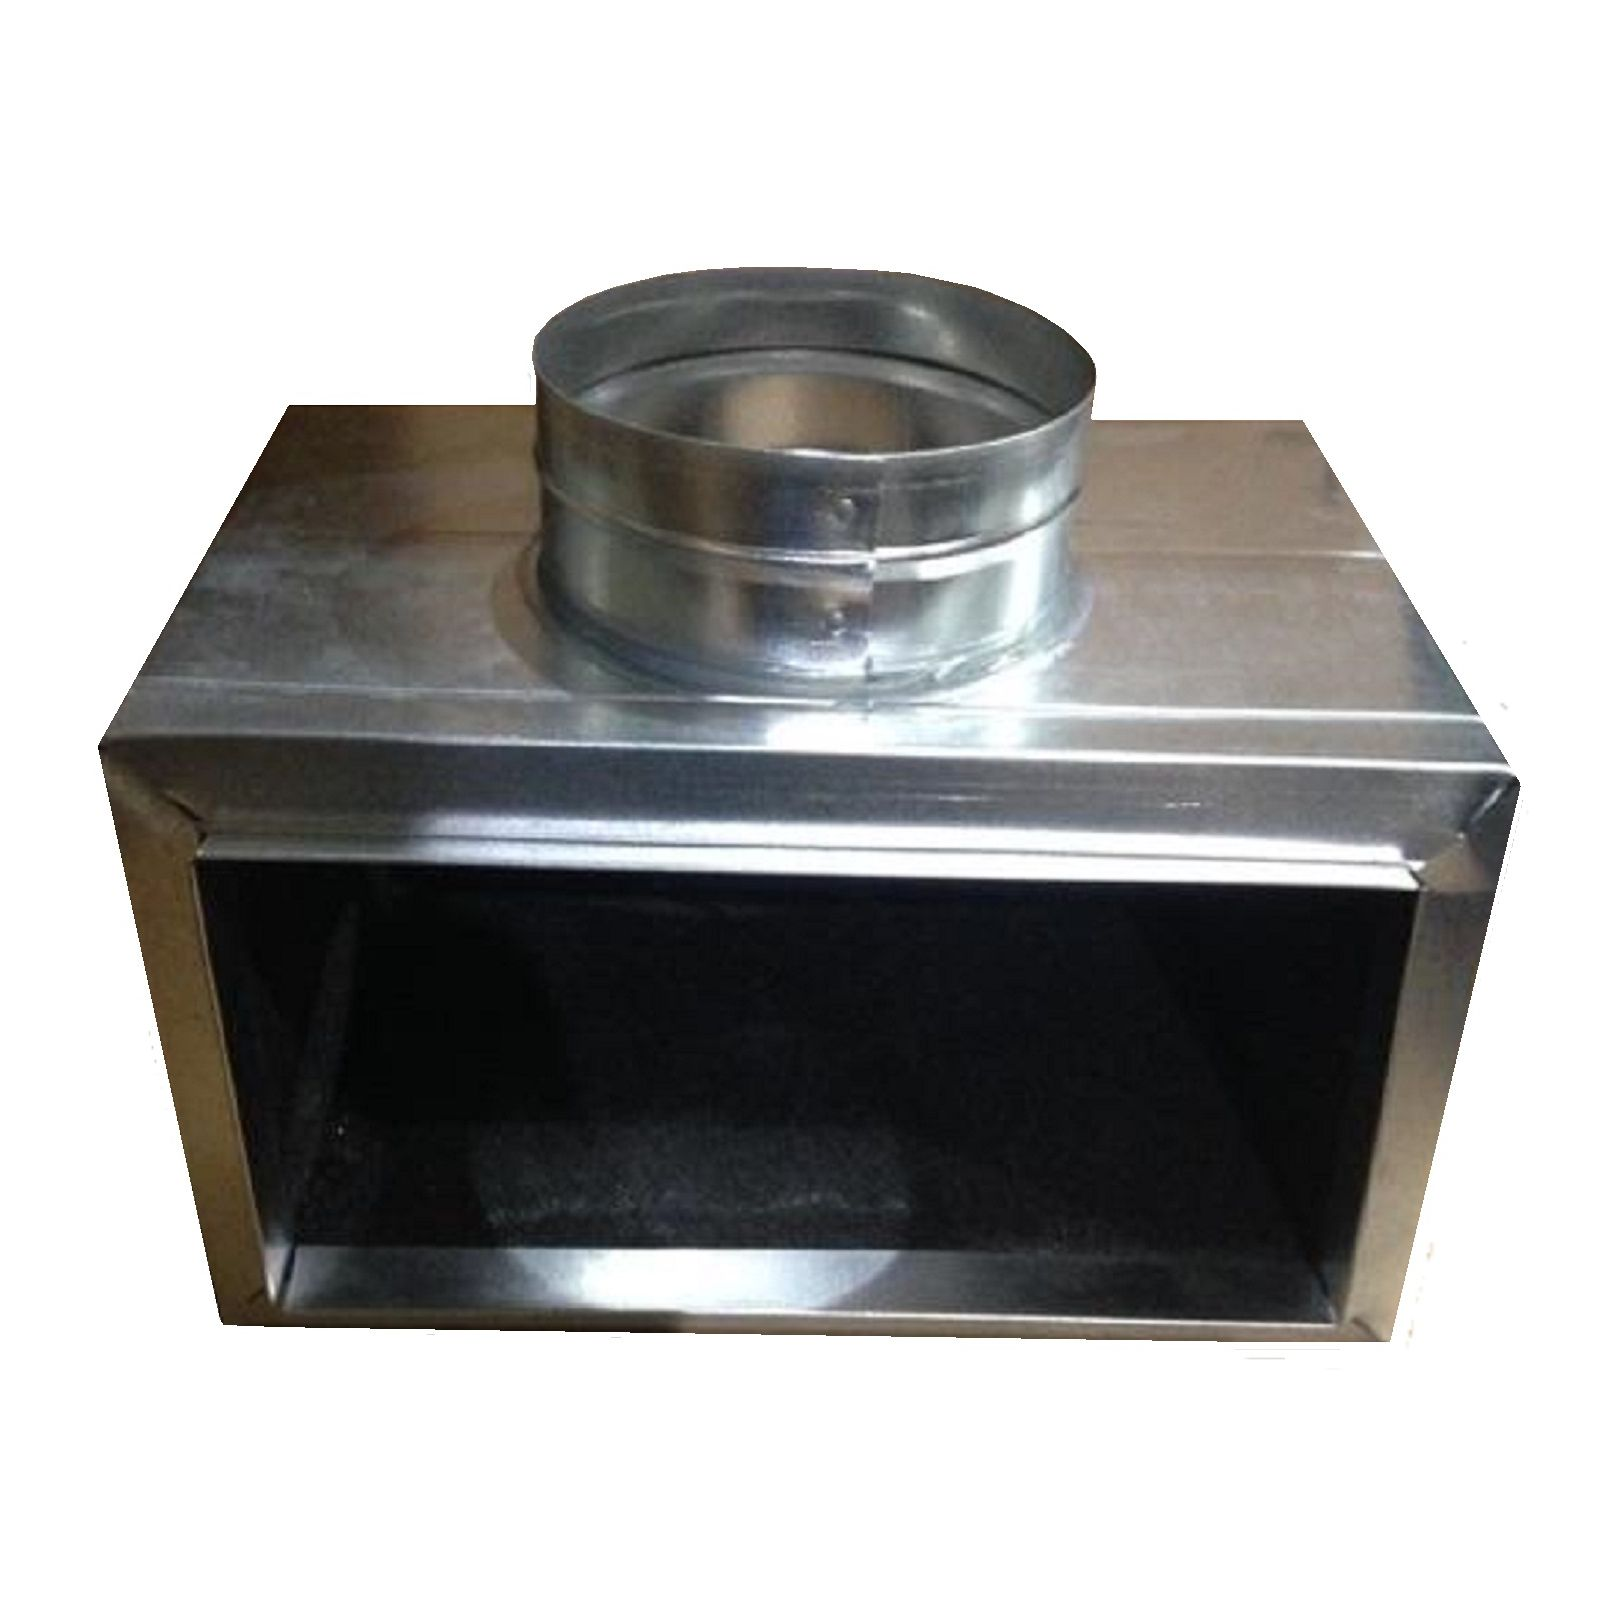 "Snap-Rite 10X06X063209NF - Side-Out Box Non-Flanged 9"" Deep, 10"" x 06"" x 06"" - R6"